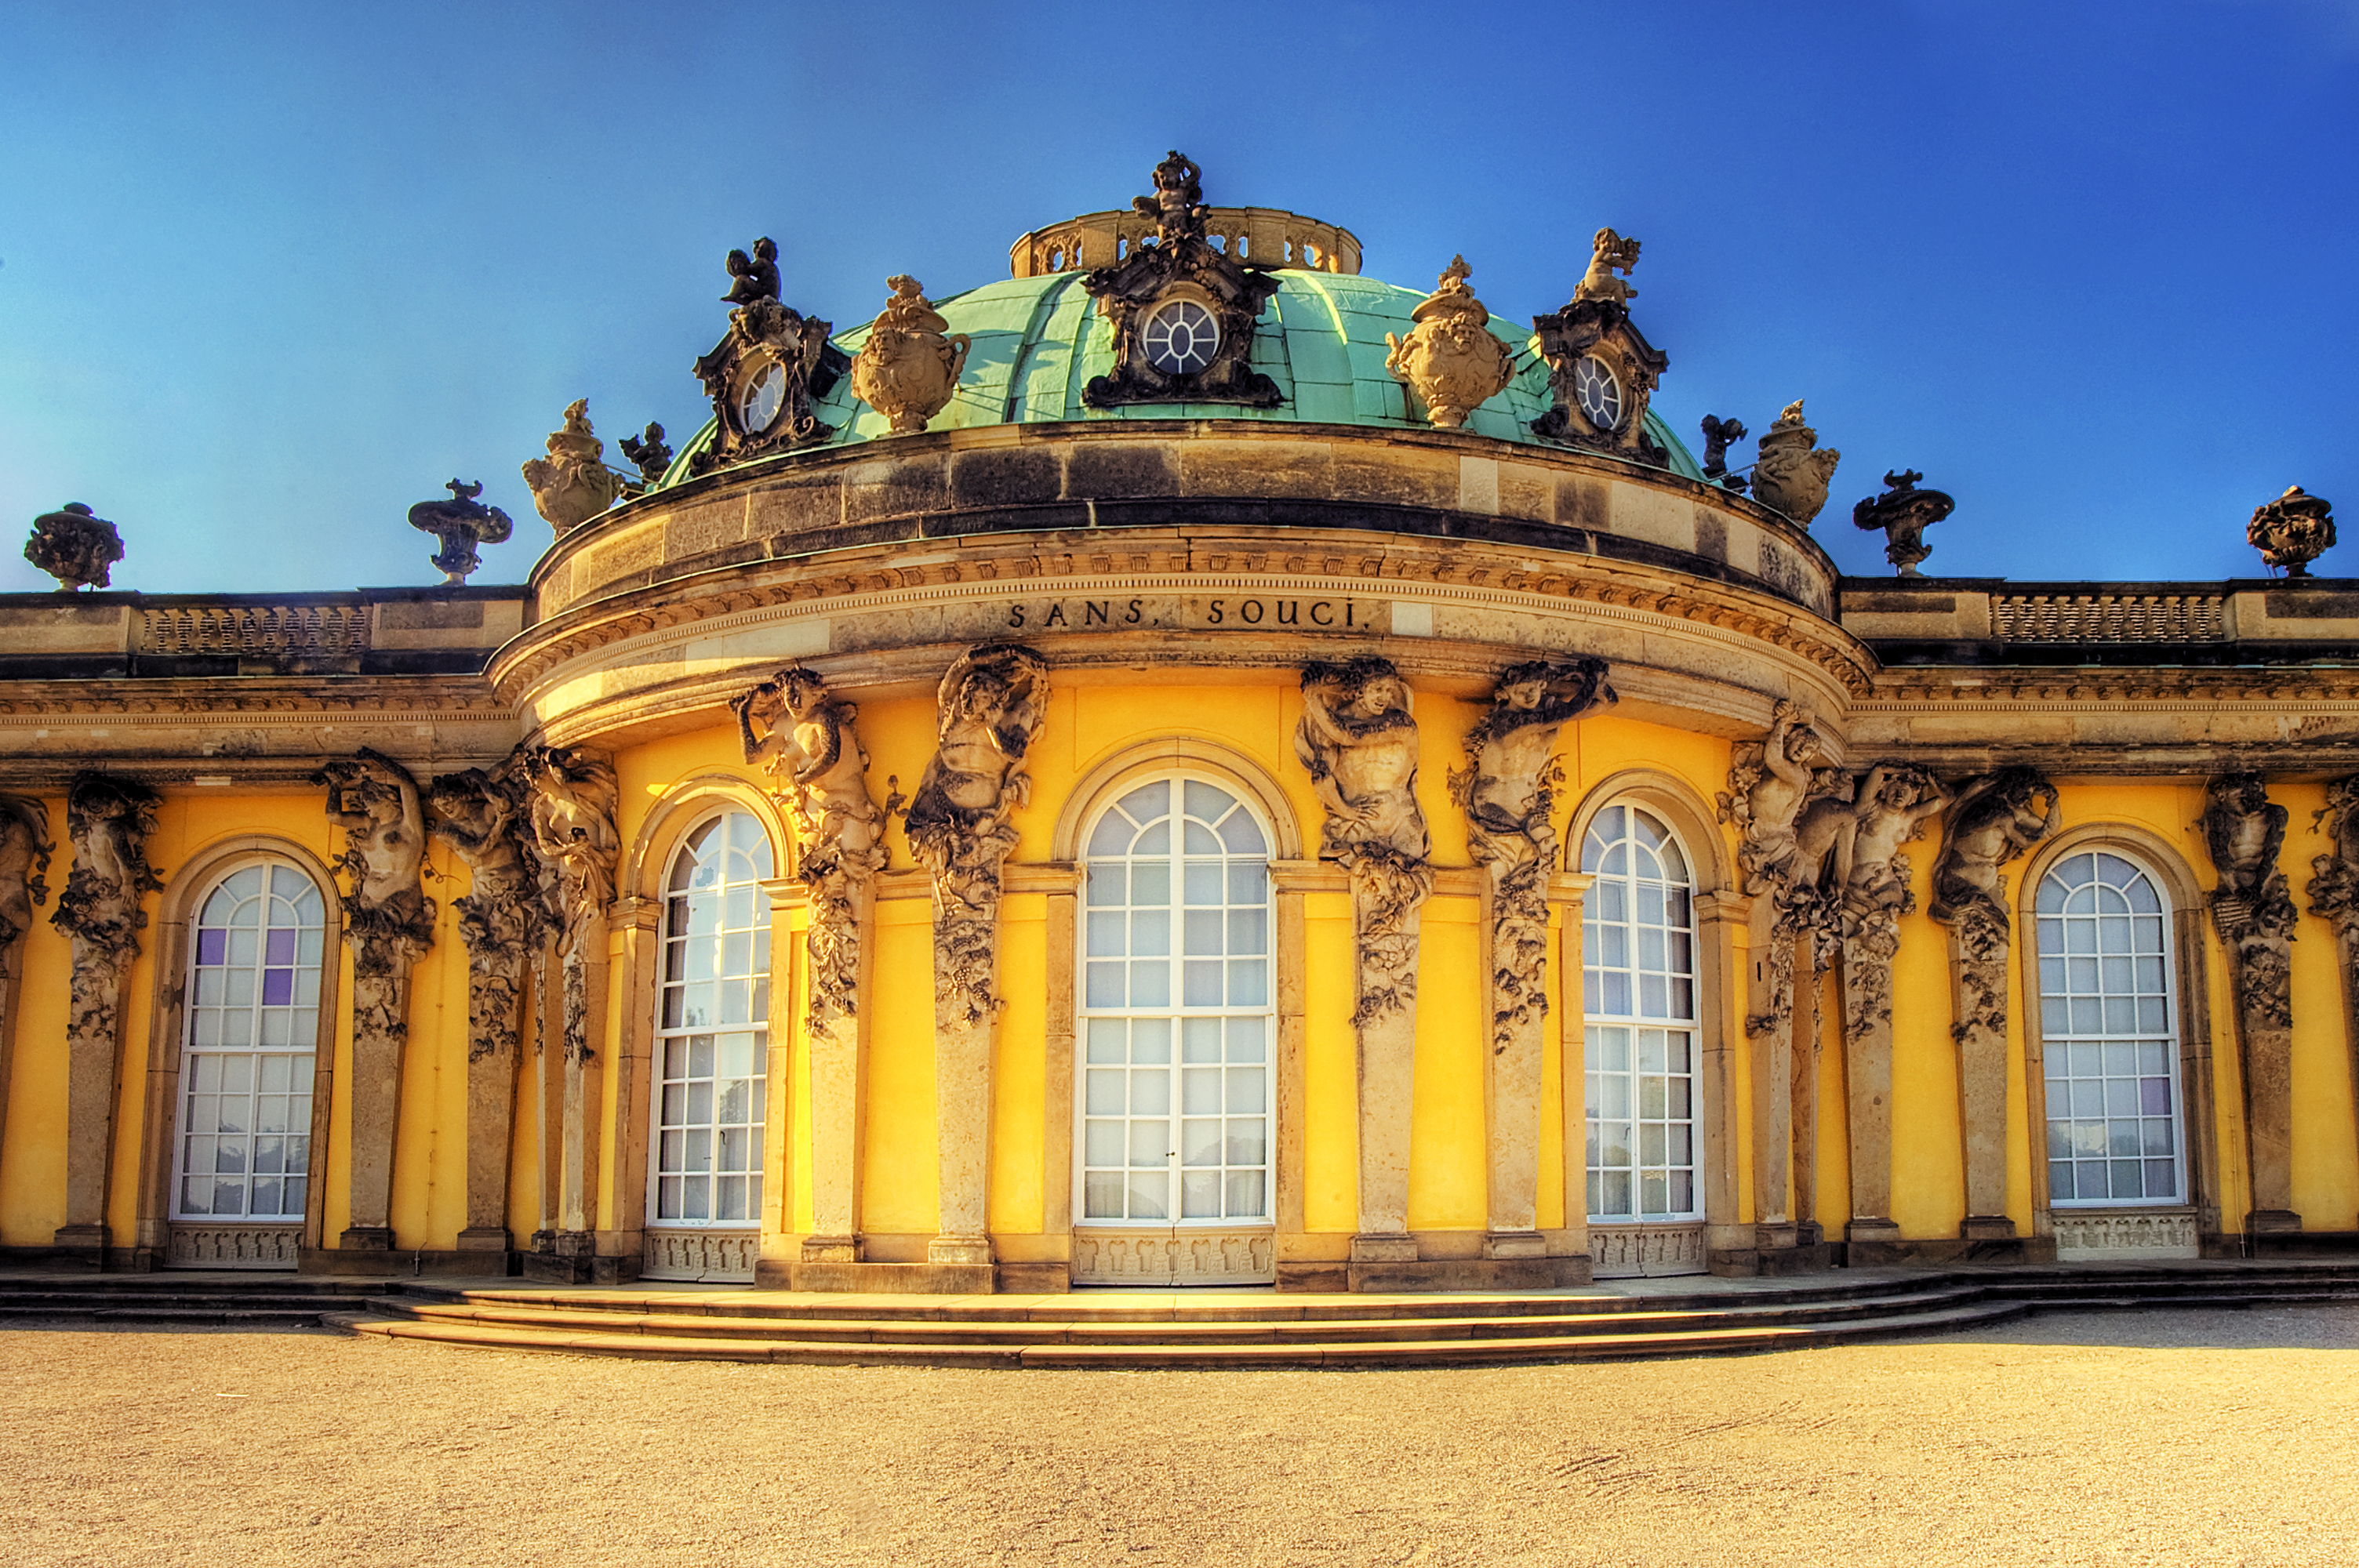 https://i1.wp.com/upload.wikimedia.org/wikipedia/commons/a/a3/Potsdam_Sanssouci_Palace.jpg